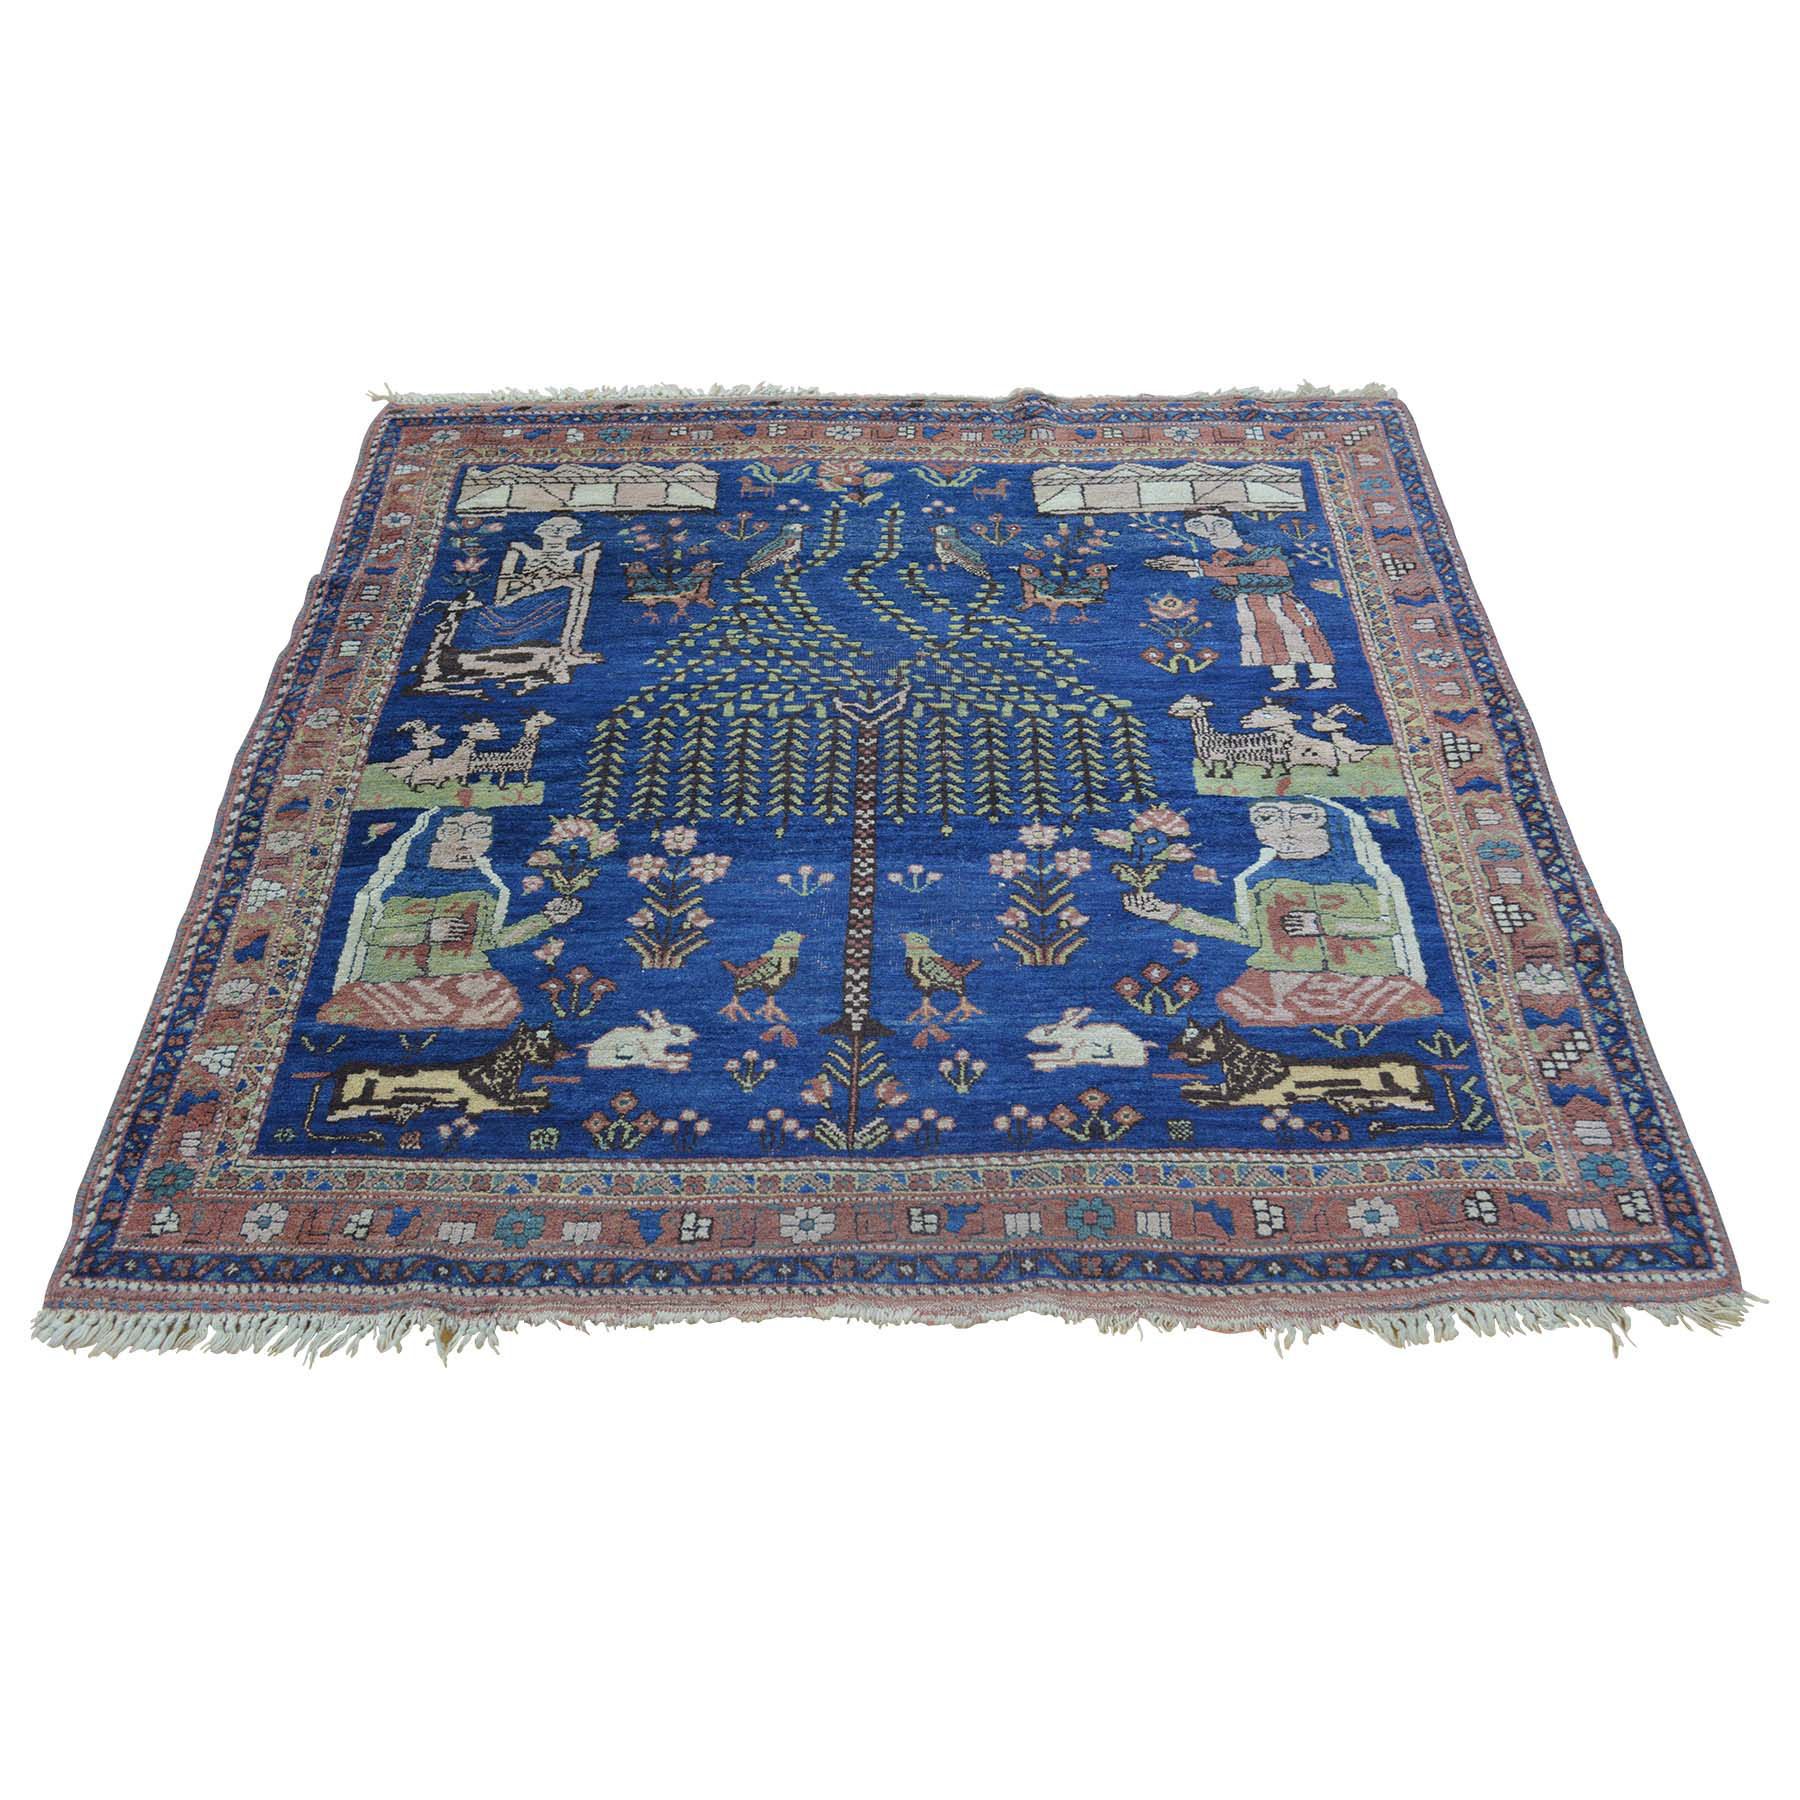 Antique Collection Hand Knotted Blue Rug No: 156466